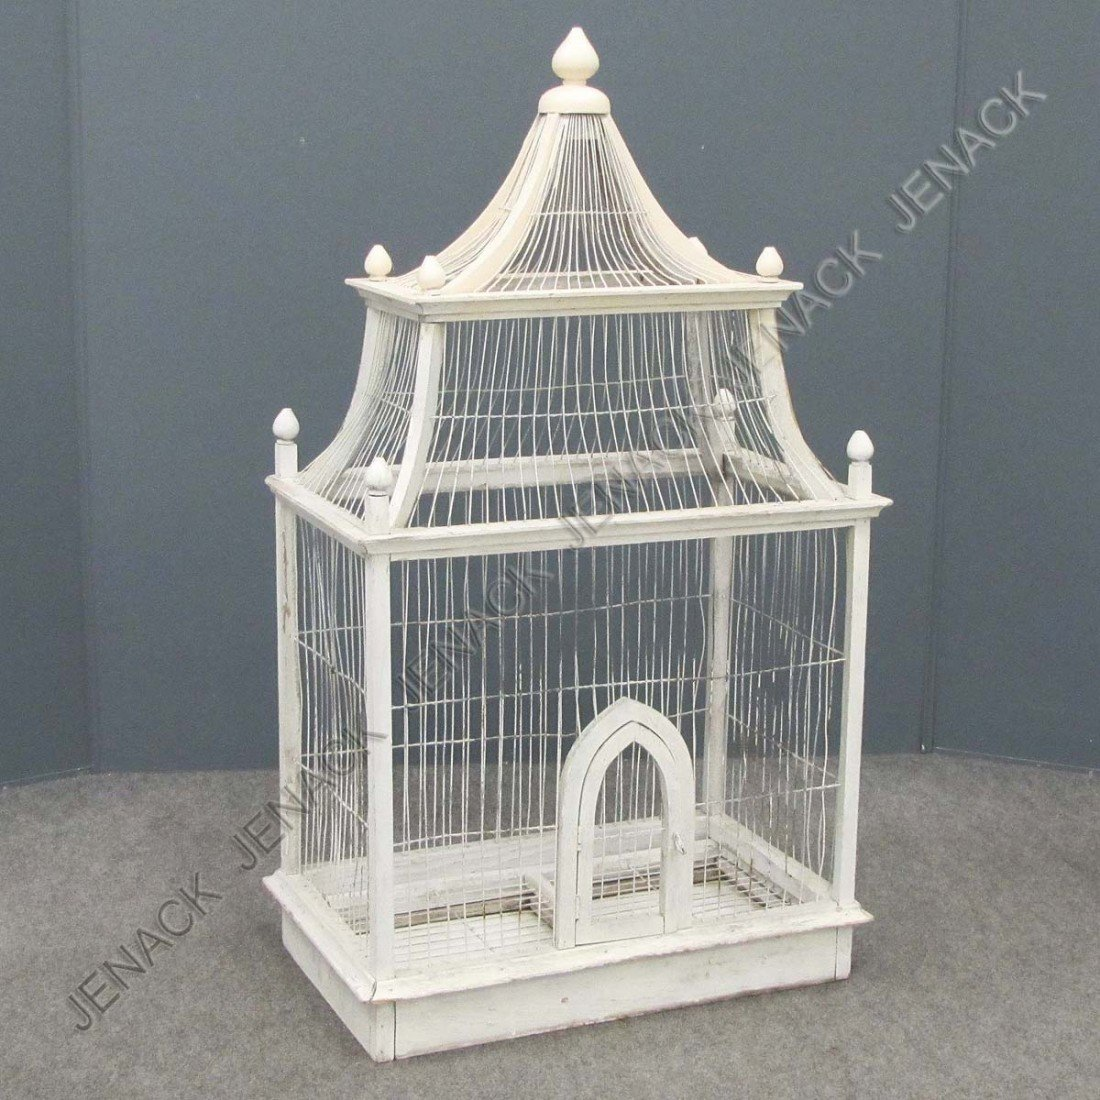 3: VINTAGE PAINTED BIRD CAGE